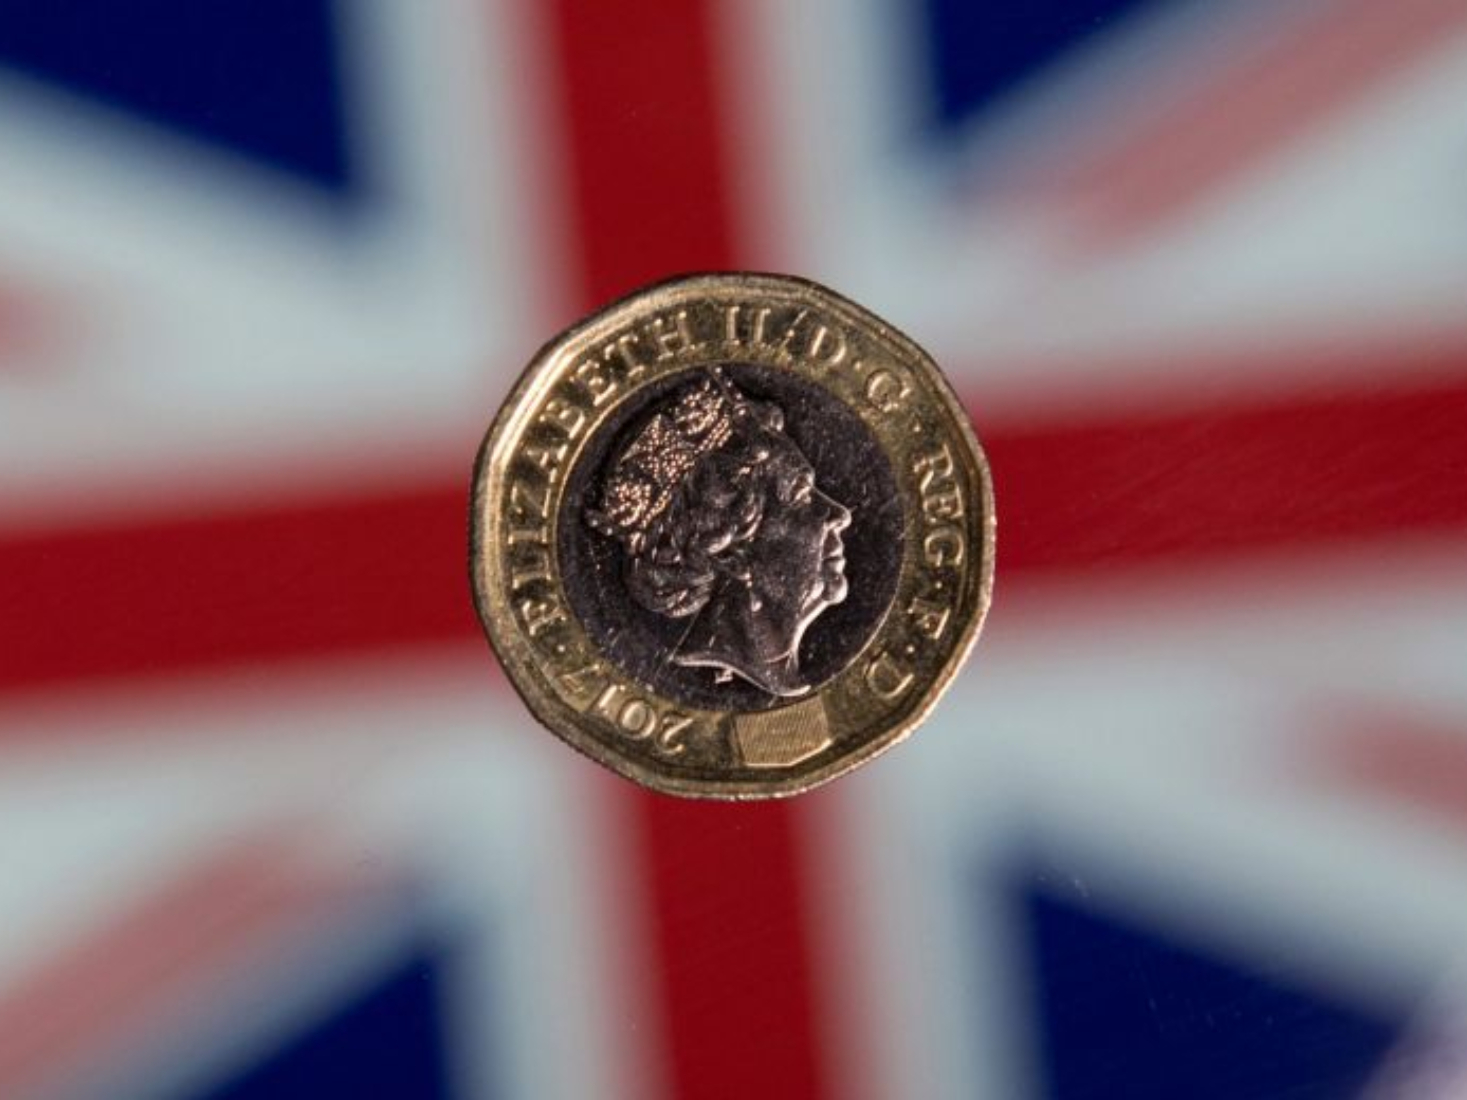 UK 'pauses' production of Brexit coin as delay looms